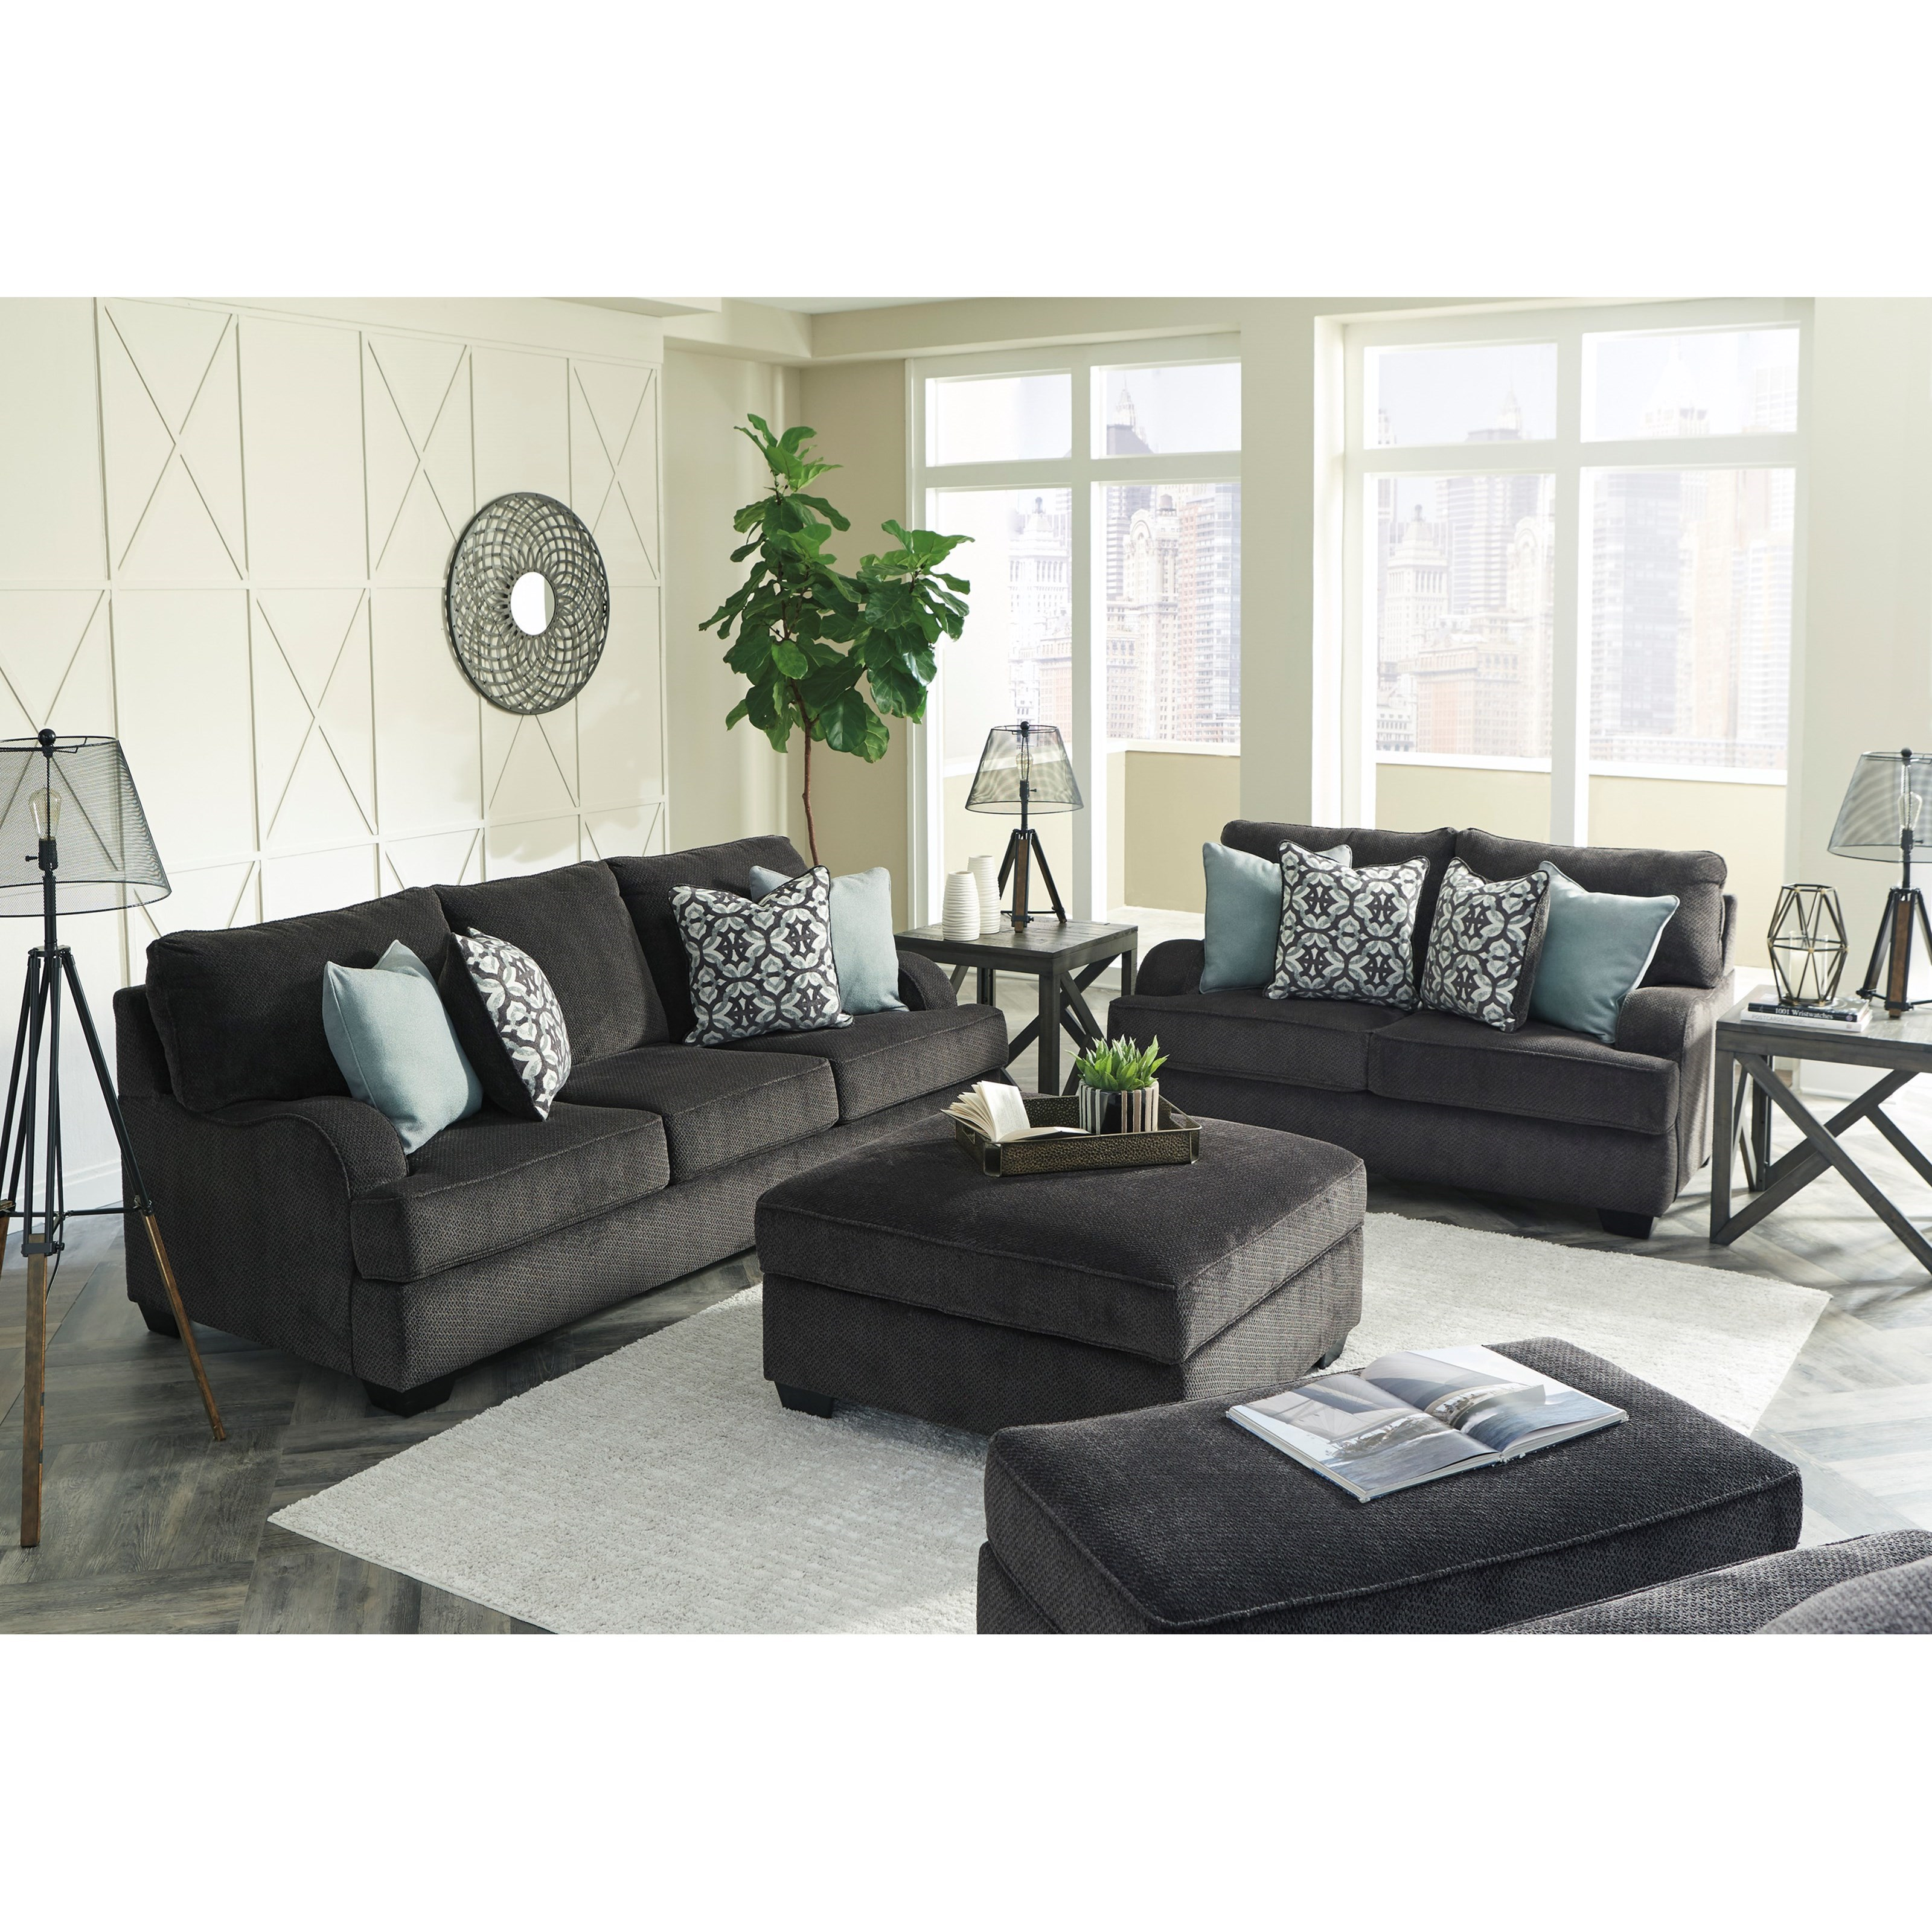 Benchcraft Charenton Queen Sofa Sleeper With English Arms